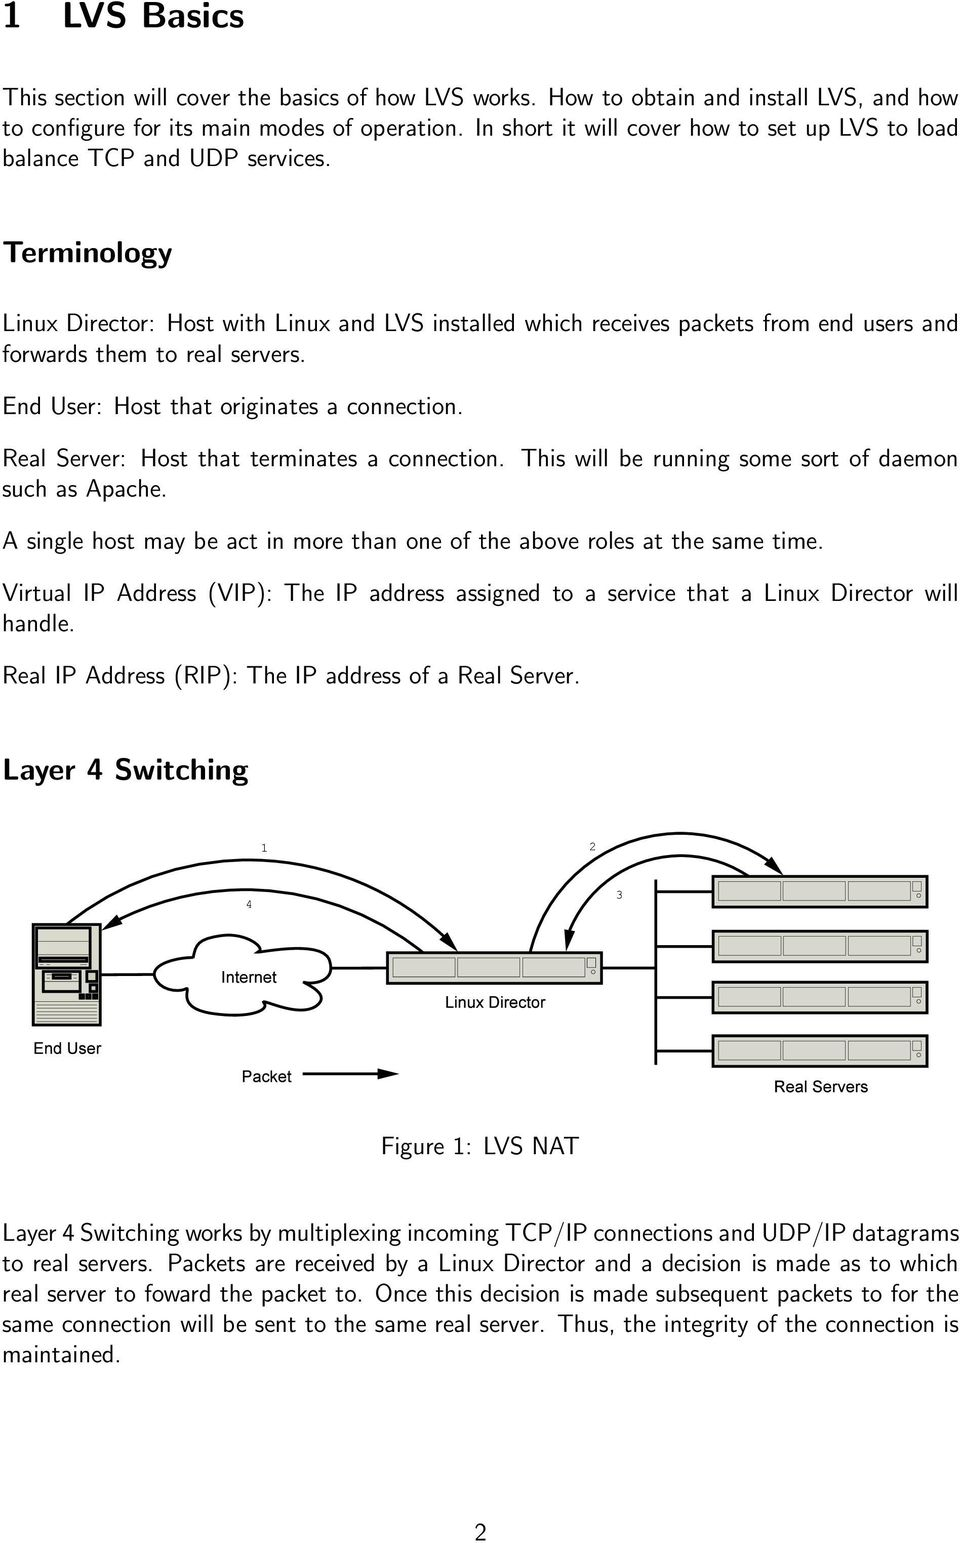 Terminology Linux Director: Host with Linux and LVS installed which receives packets from end users and forwards them to real servers. End User: Host that originates a connection.